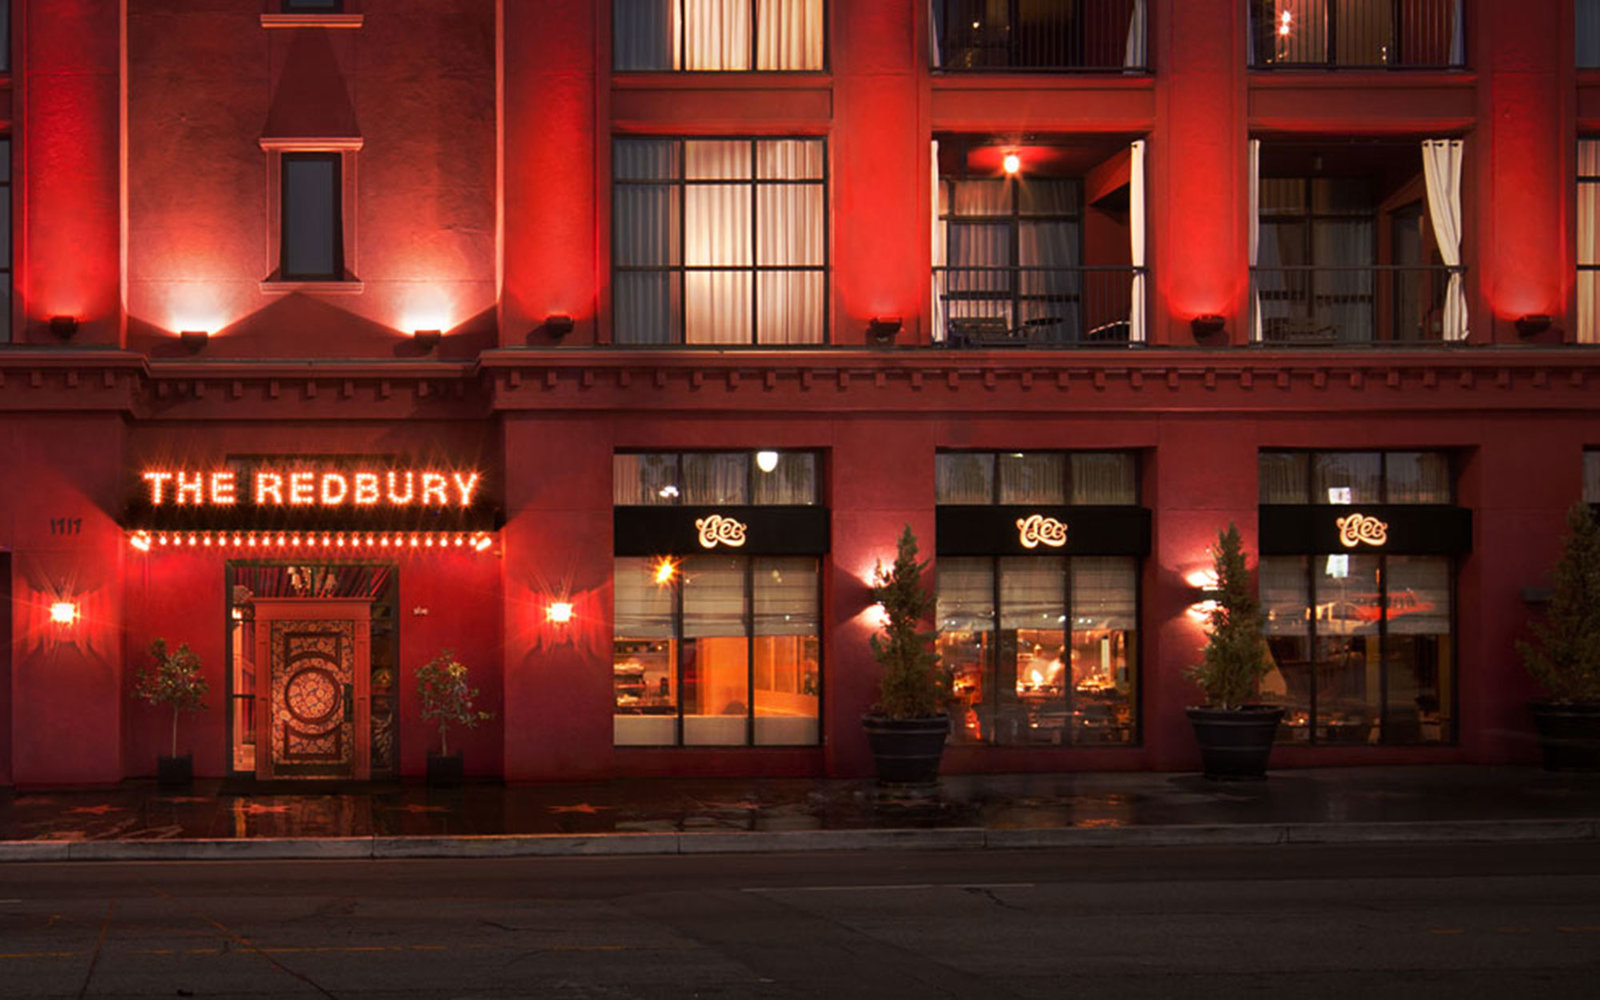 redbury-hollywood-WBLA0616.jpg